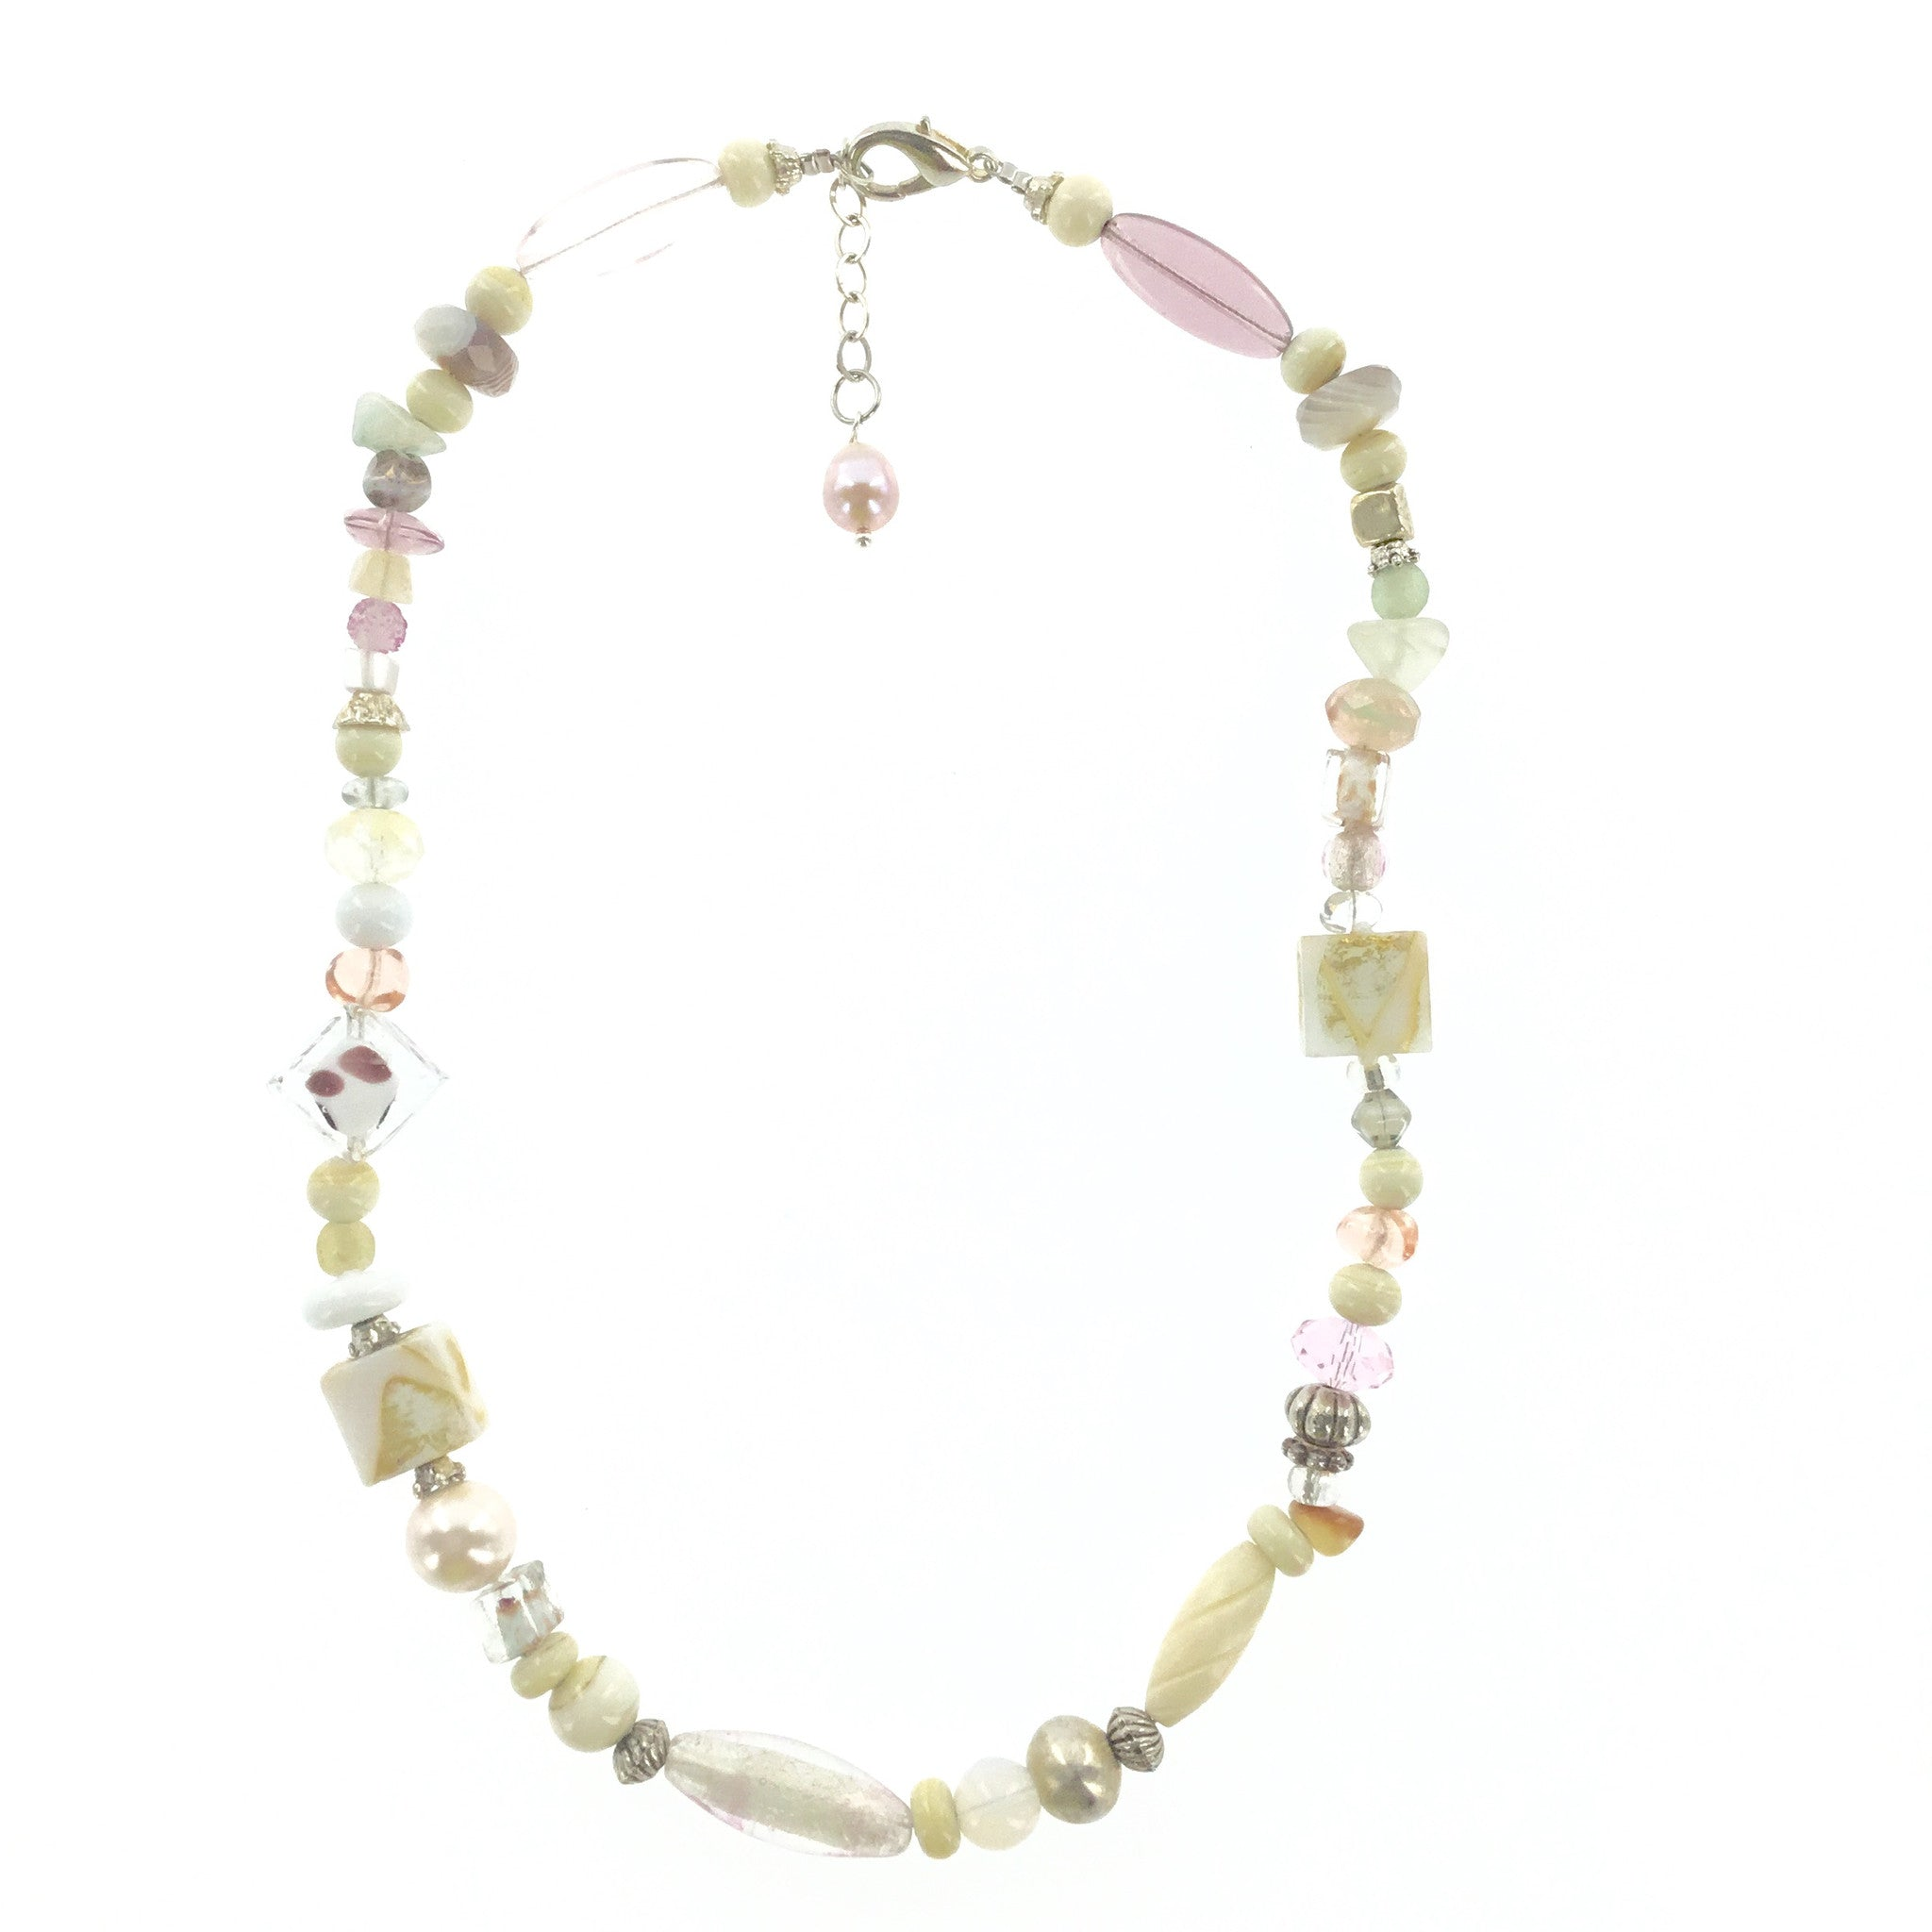 Ivory and Pink Murano Glass Necklace - Real Chic Boutique  - 2